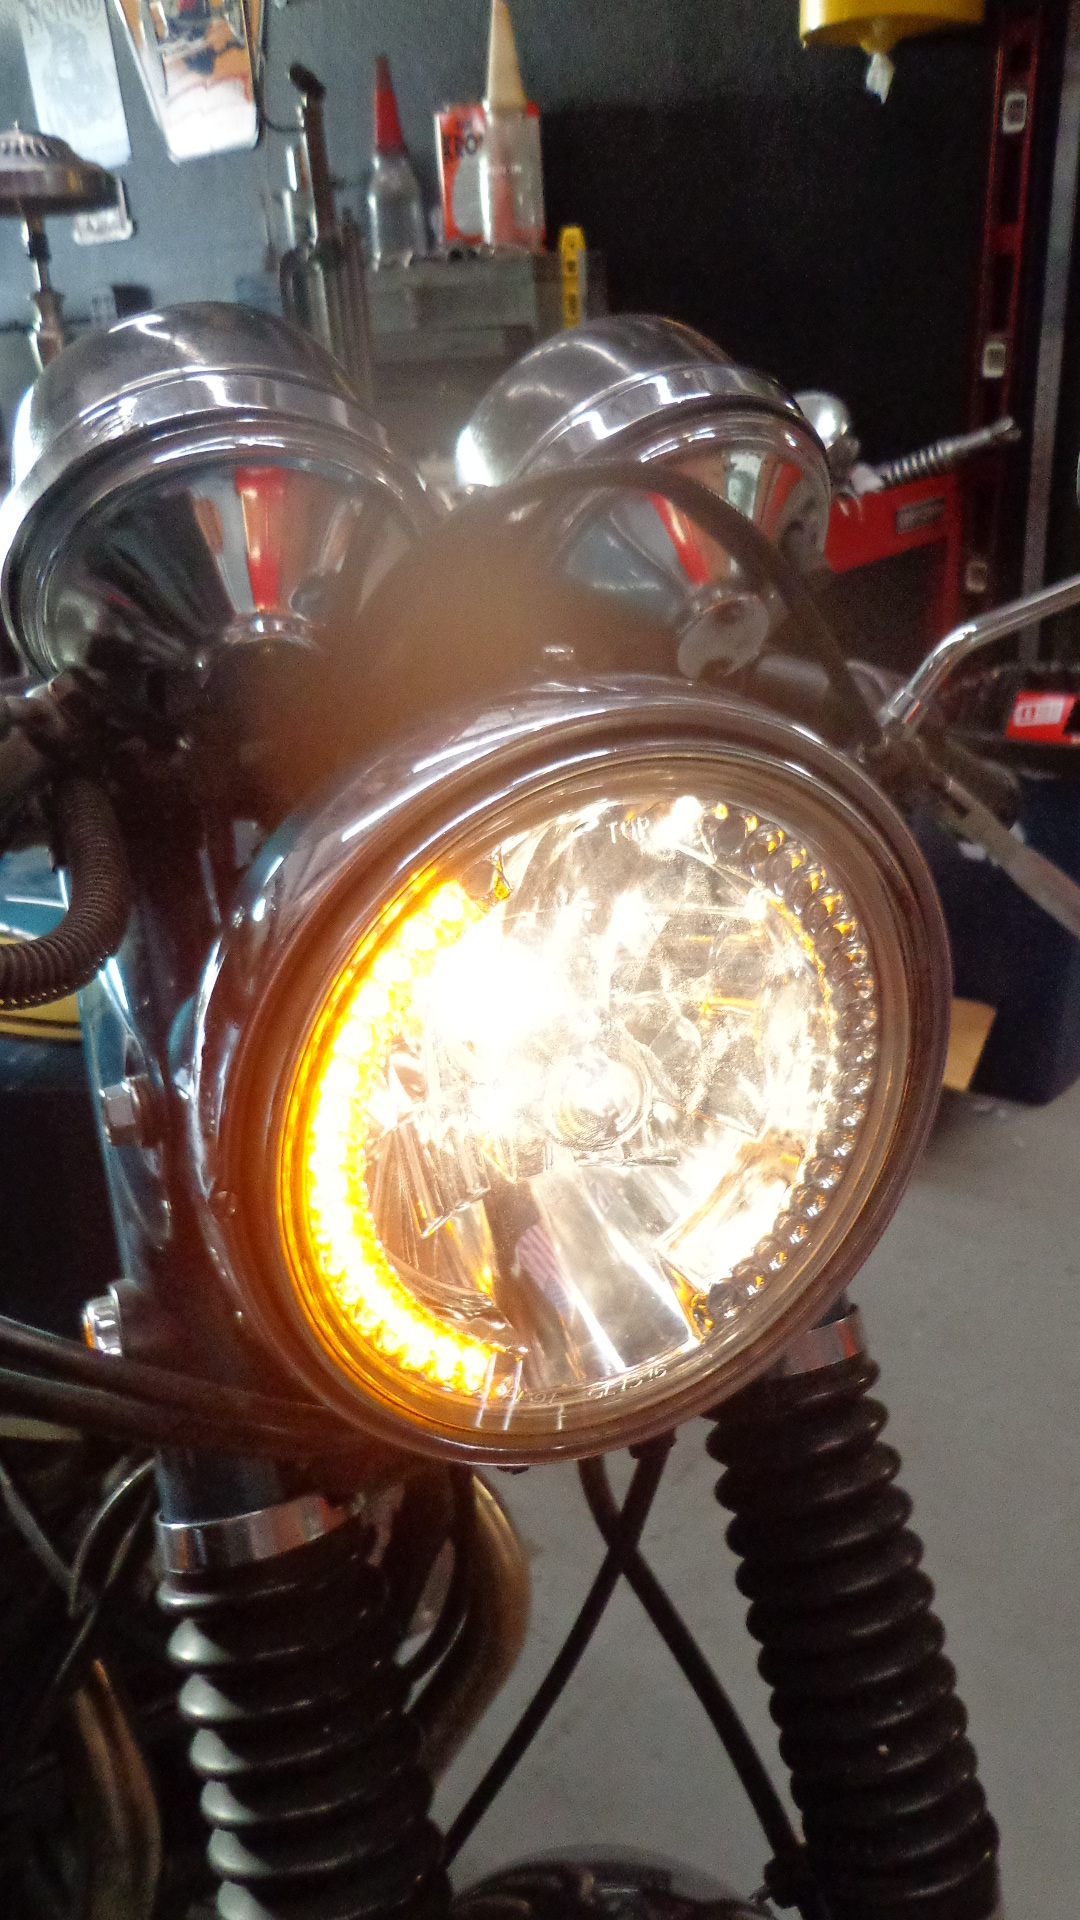 Wiring Motorcycle Headlight Turn Signals Schematics Diagrams 2011 Honda Shadow Signal 7 U2033 With L E D Carpy S Cafe Racers Rh Carpyscaferacers Com Switch Diagram Flasher Relay